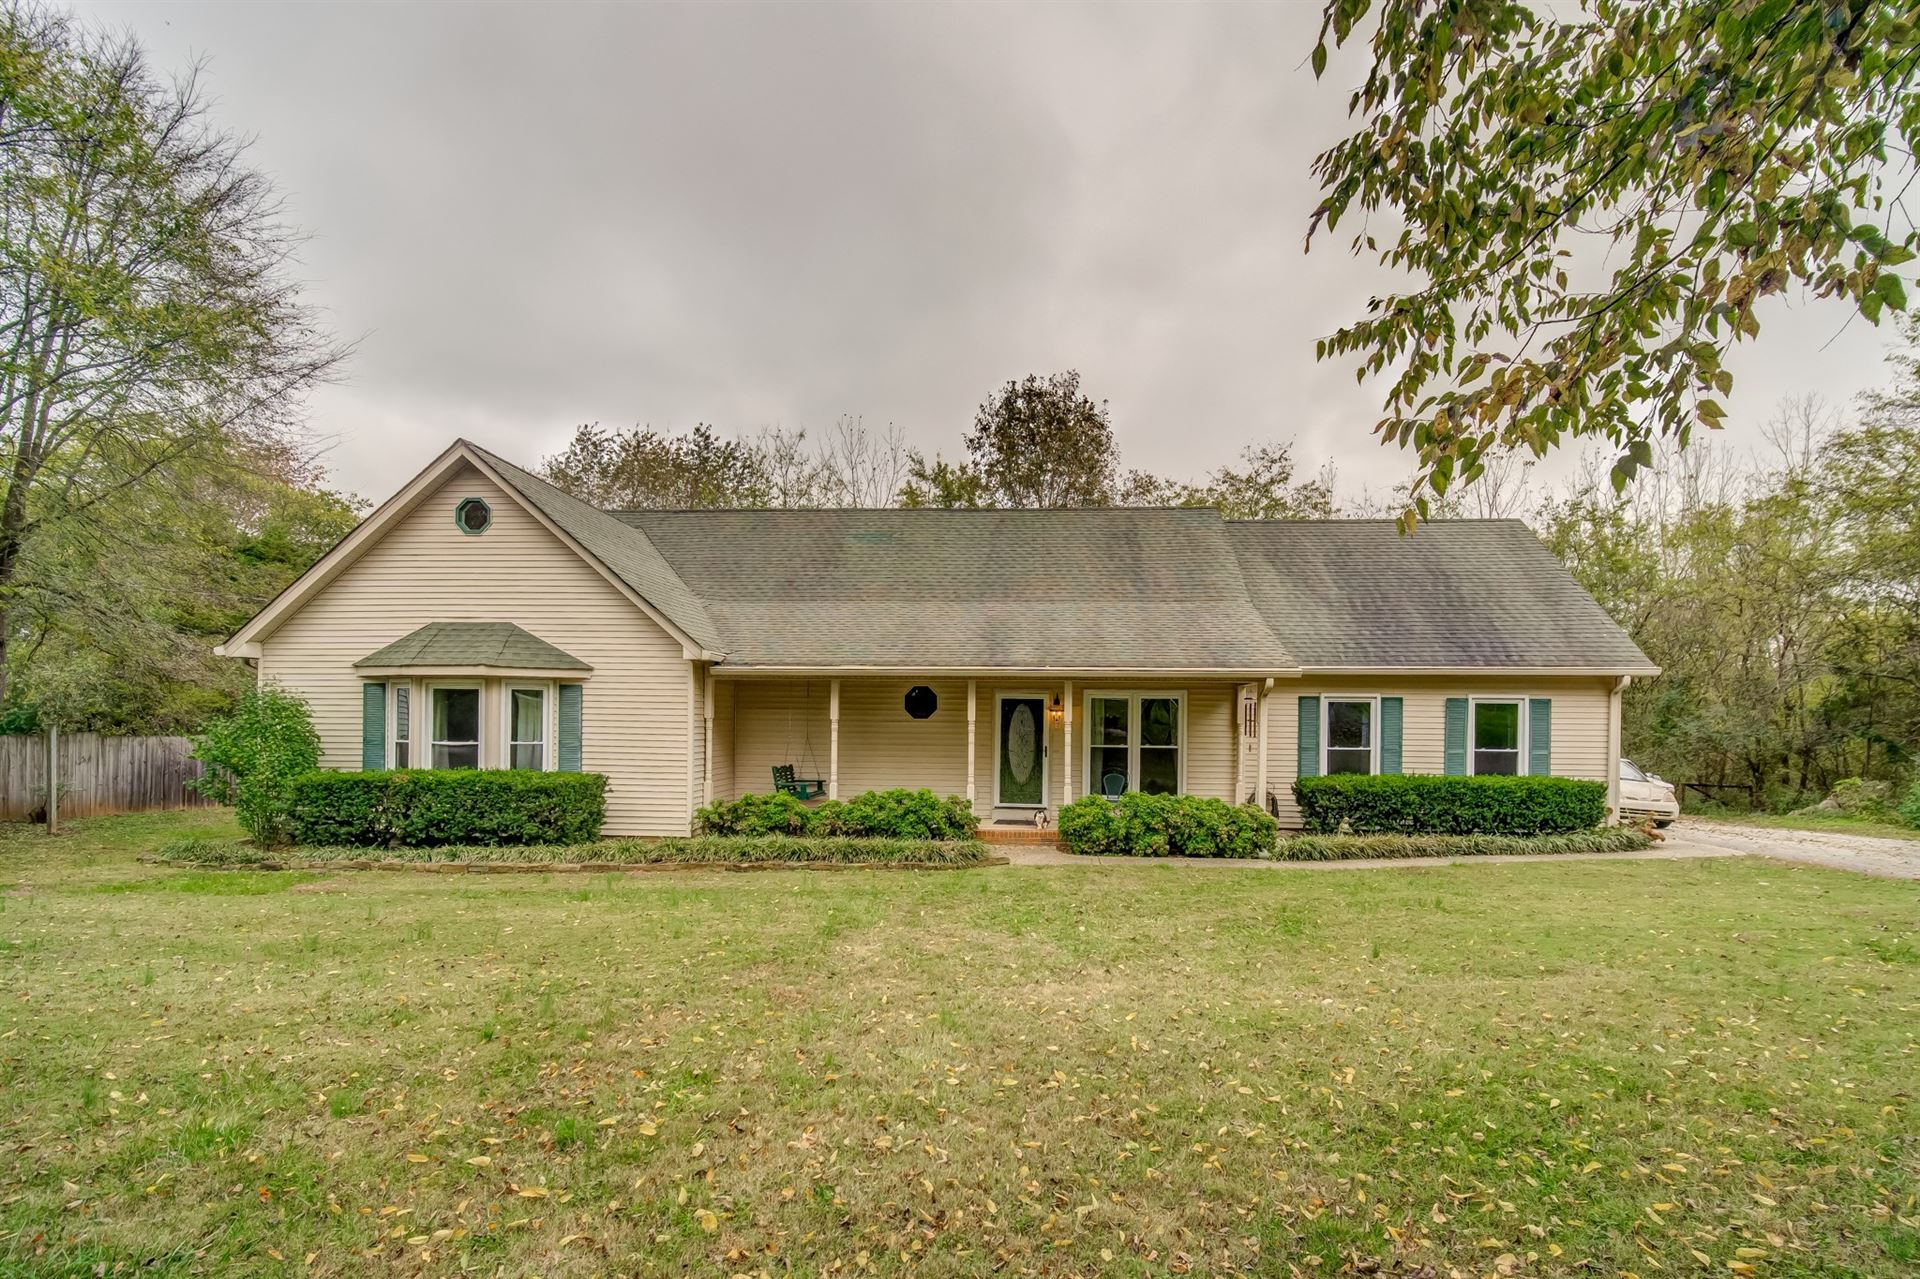 8988 Big Oak Dr, Murfreesboro, TN 37129 - MLS#: 2201978